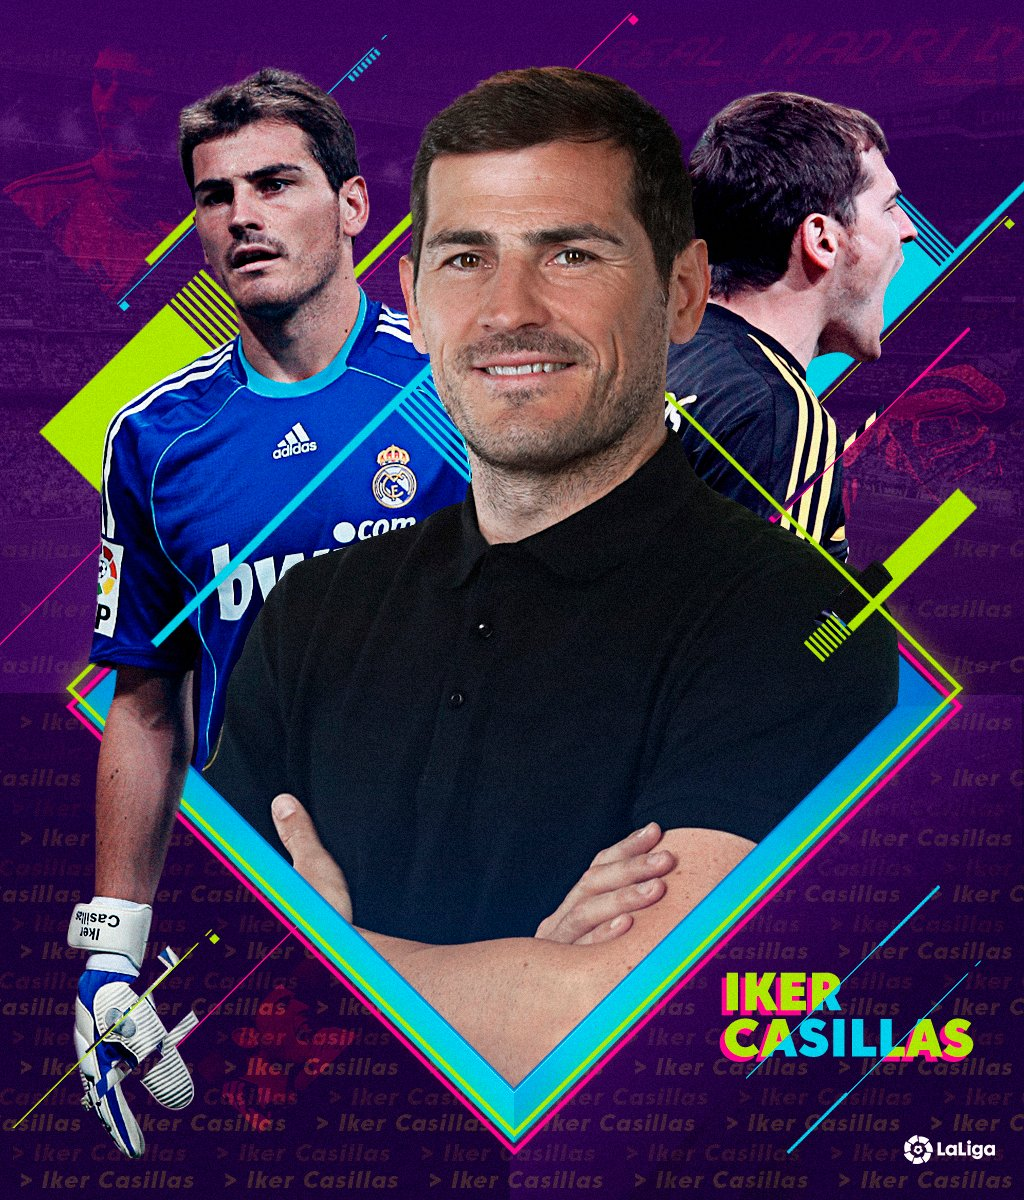 Official: @IkerCasillas announces his retirement from professional football. 💜  THANKS FOR EVERYTHING, SAN IKER! 👼  #LaLigaIcons